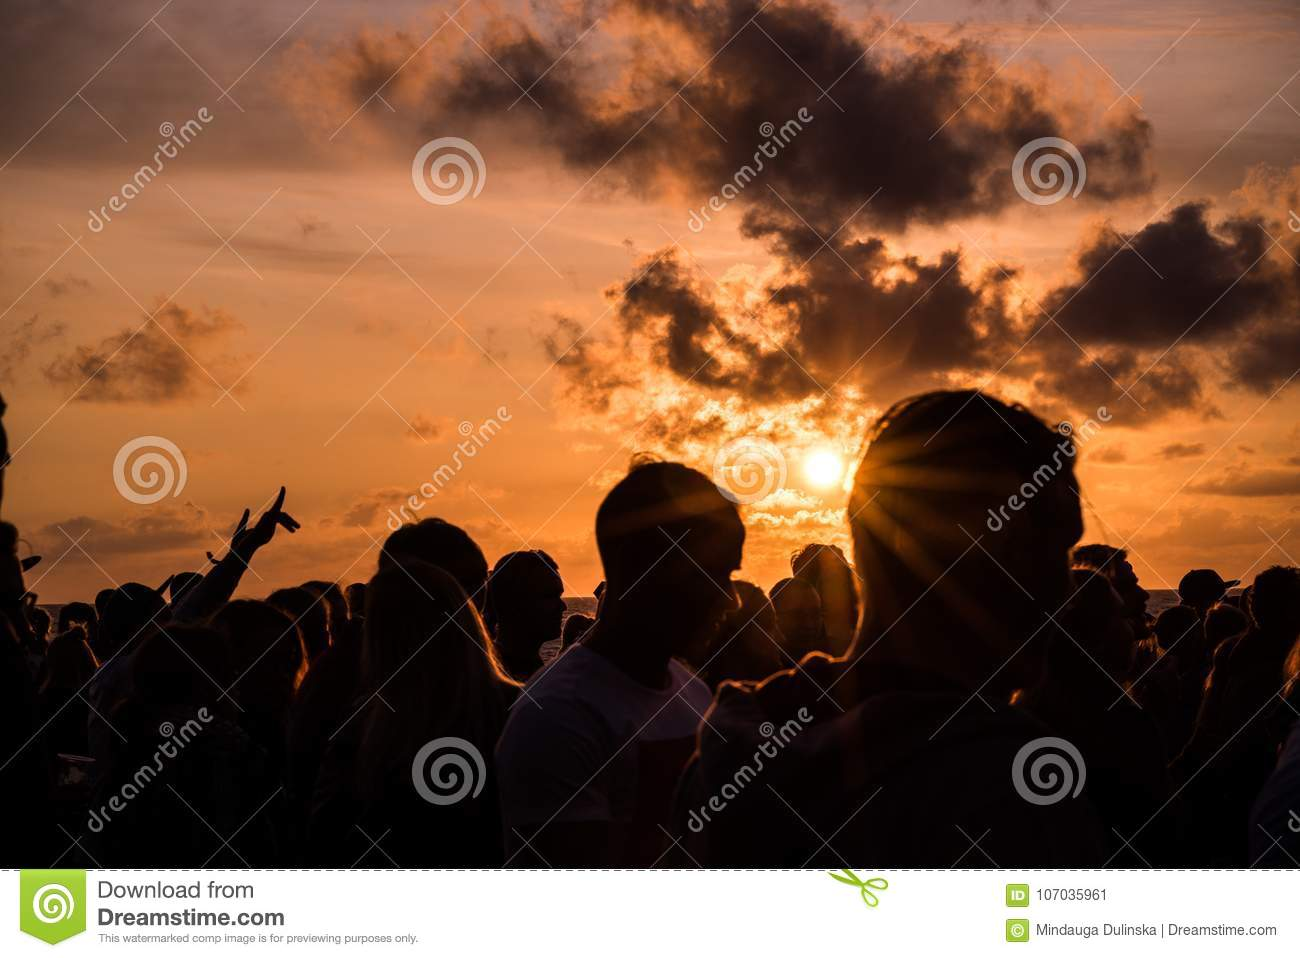 KLAIPEDA, LITHUANIA - AUGUST 19, 2017: Sunset Light with People and Shadows. Sunset at Baltic Sea Beach